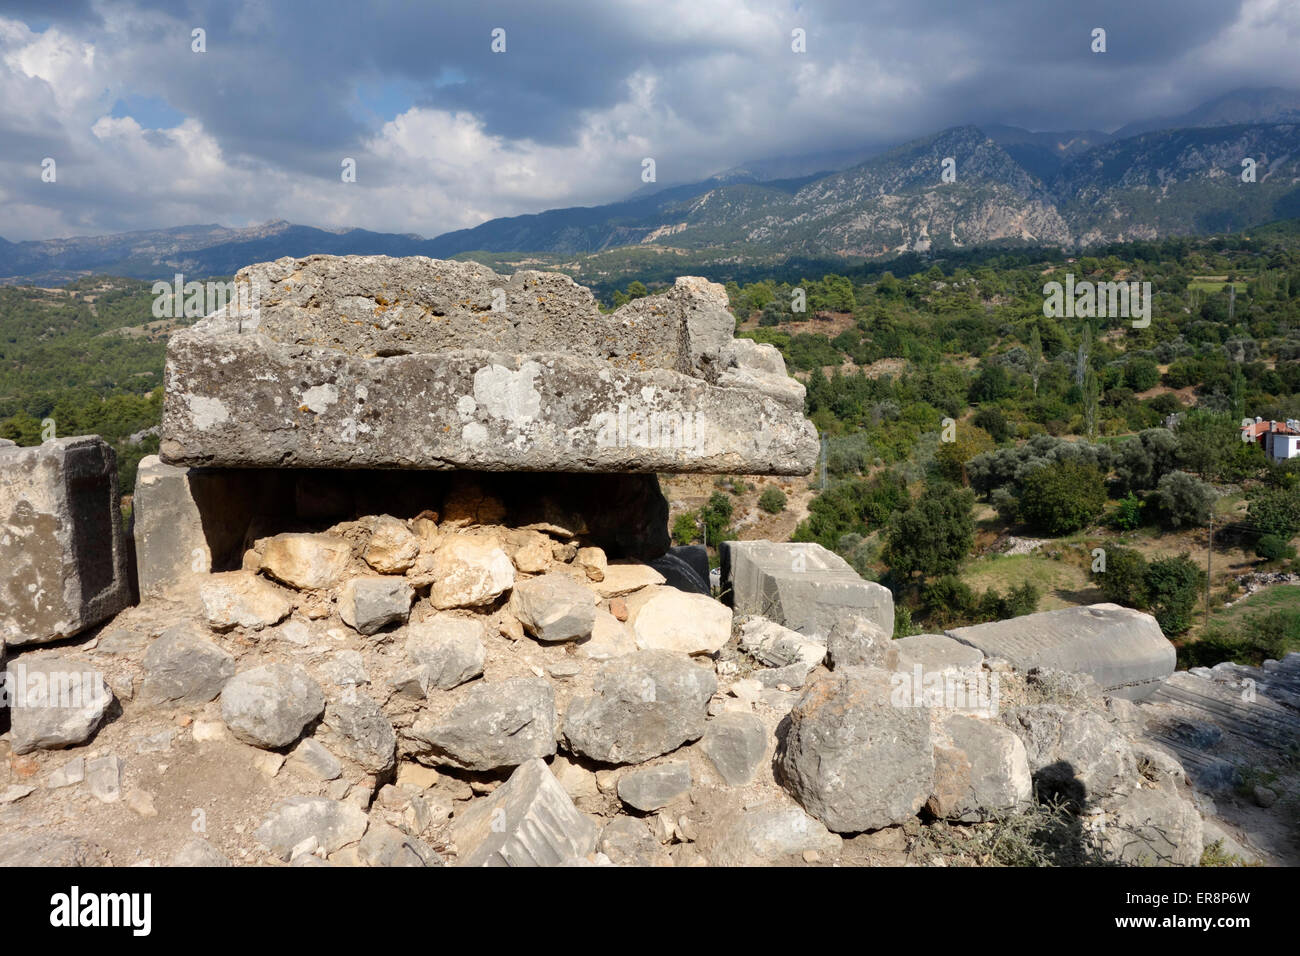 Part of the fortified wall at the north side of the ancient city of Tlos, Turkey - Stock Image